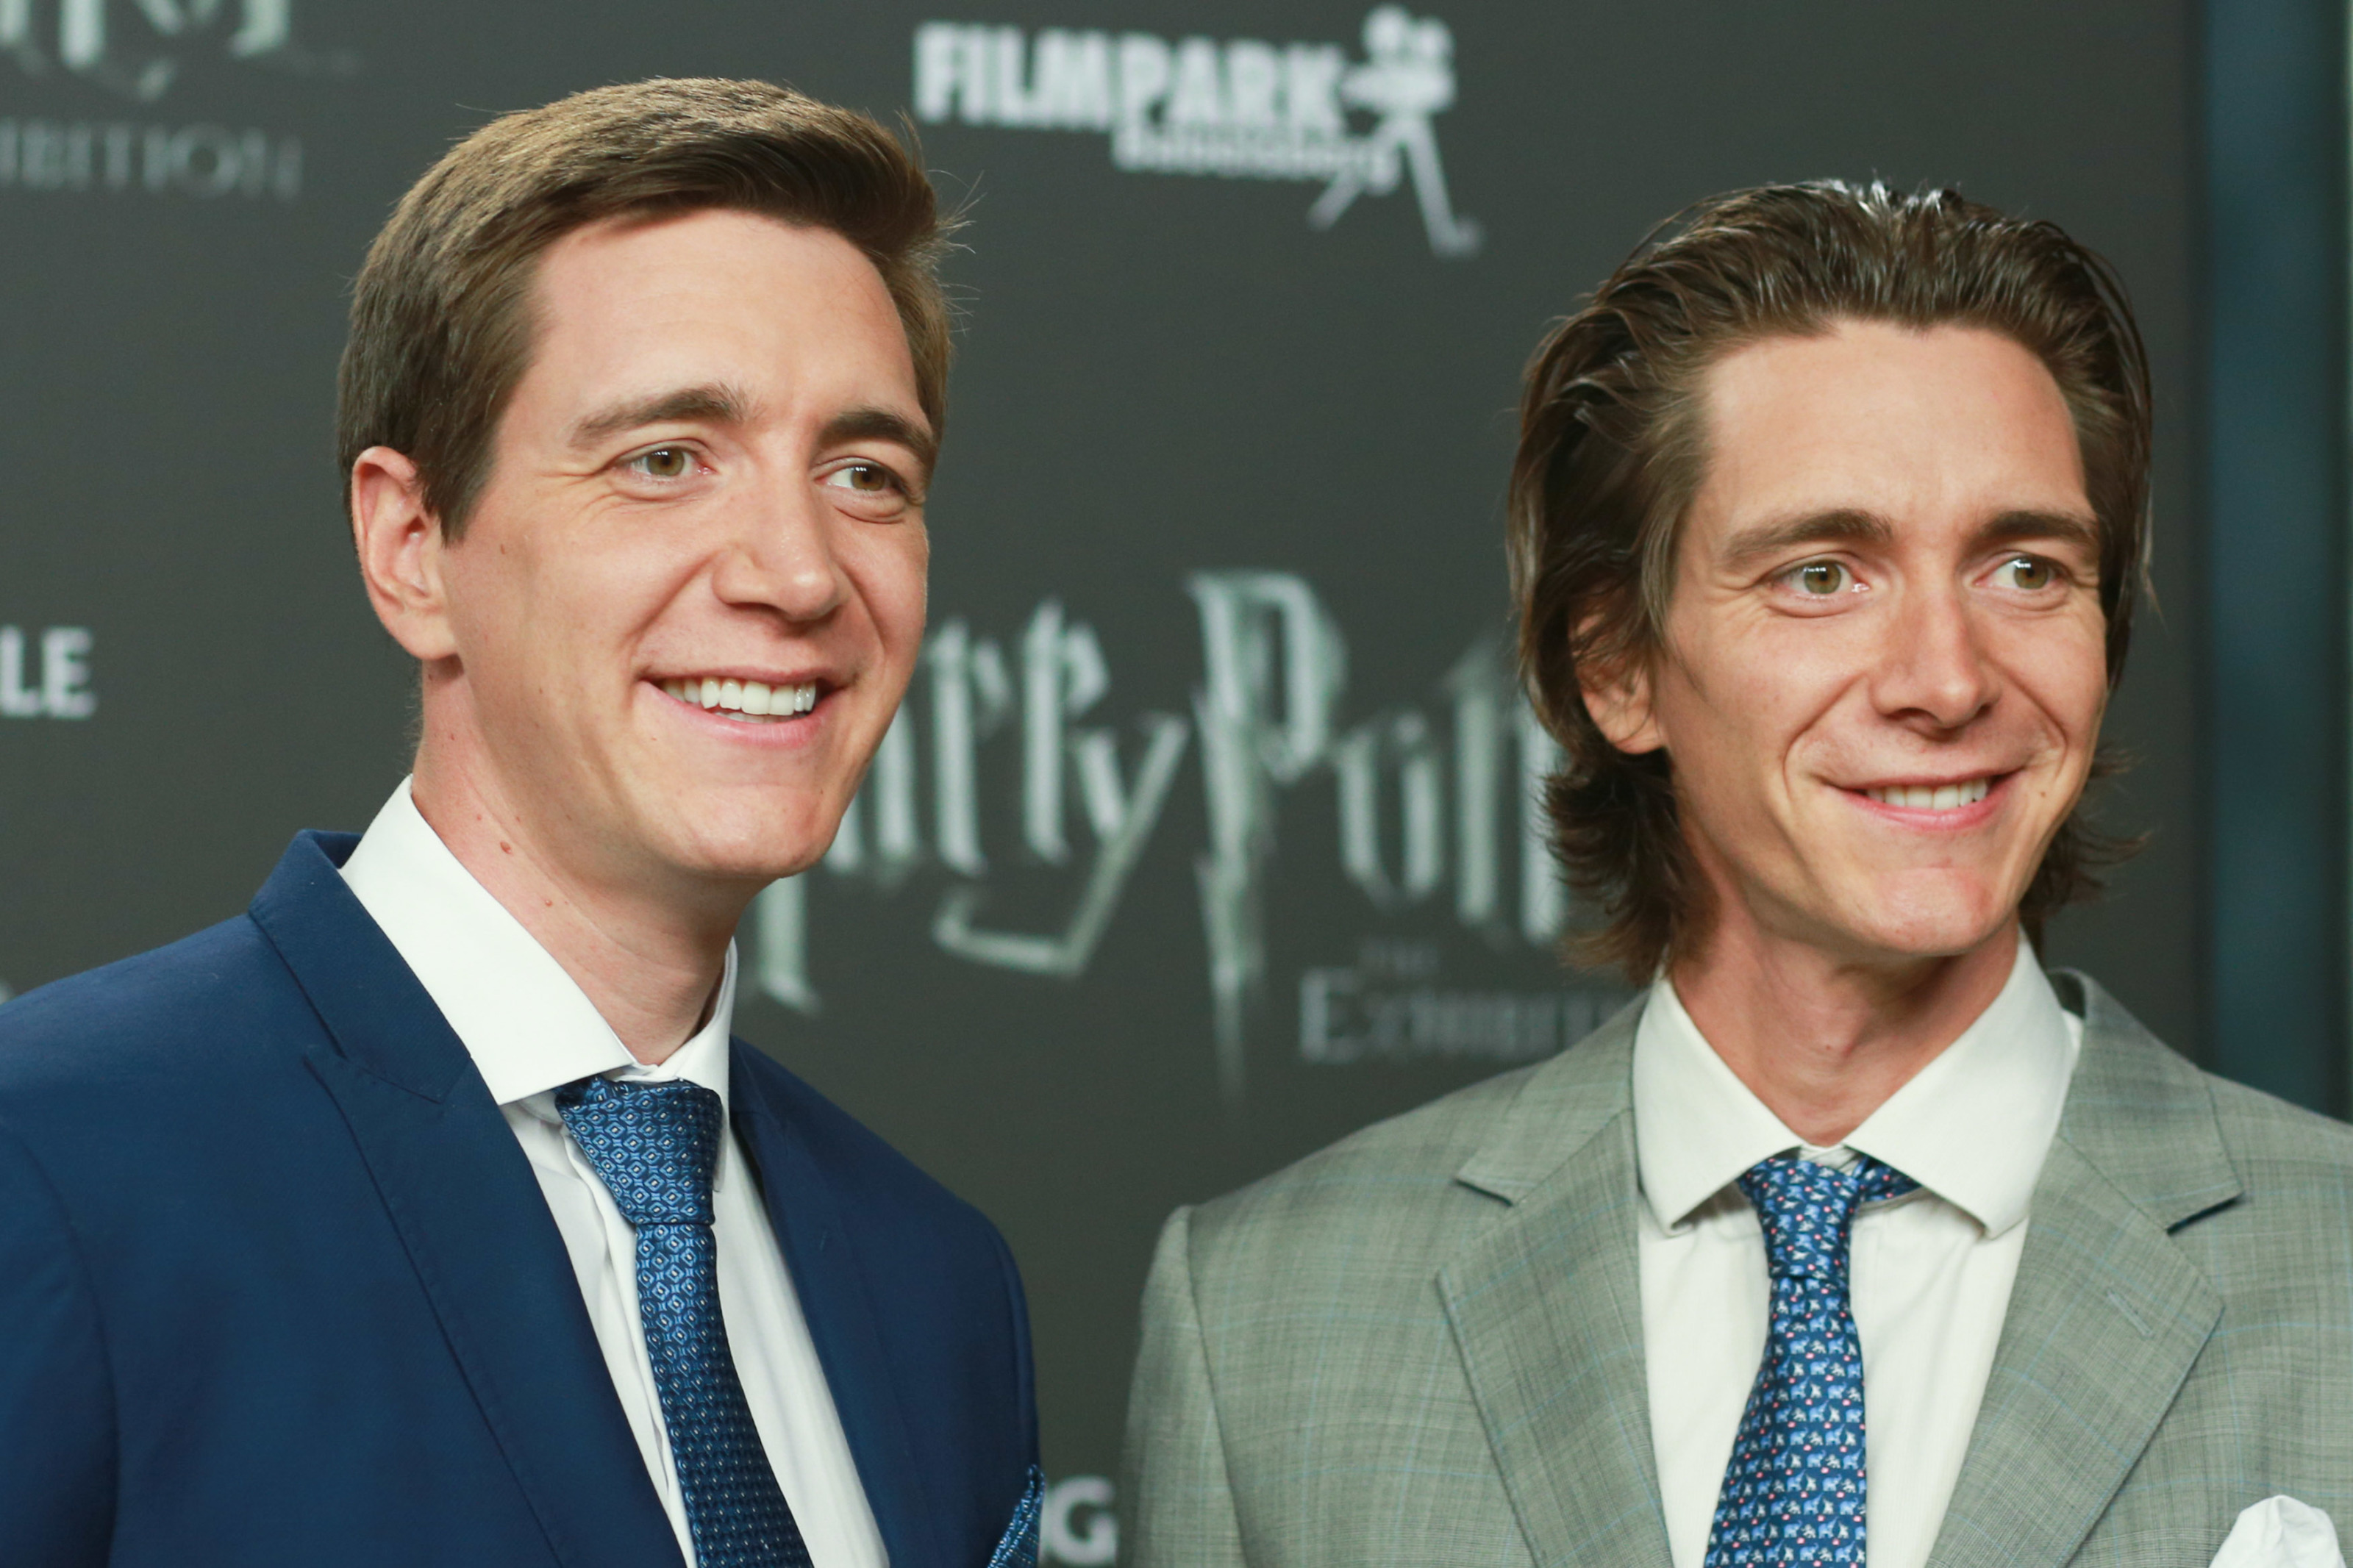 Fred And George Weasley Are The Role Models We All Need Right Now